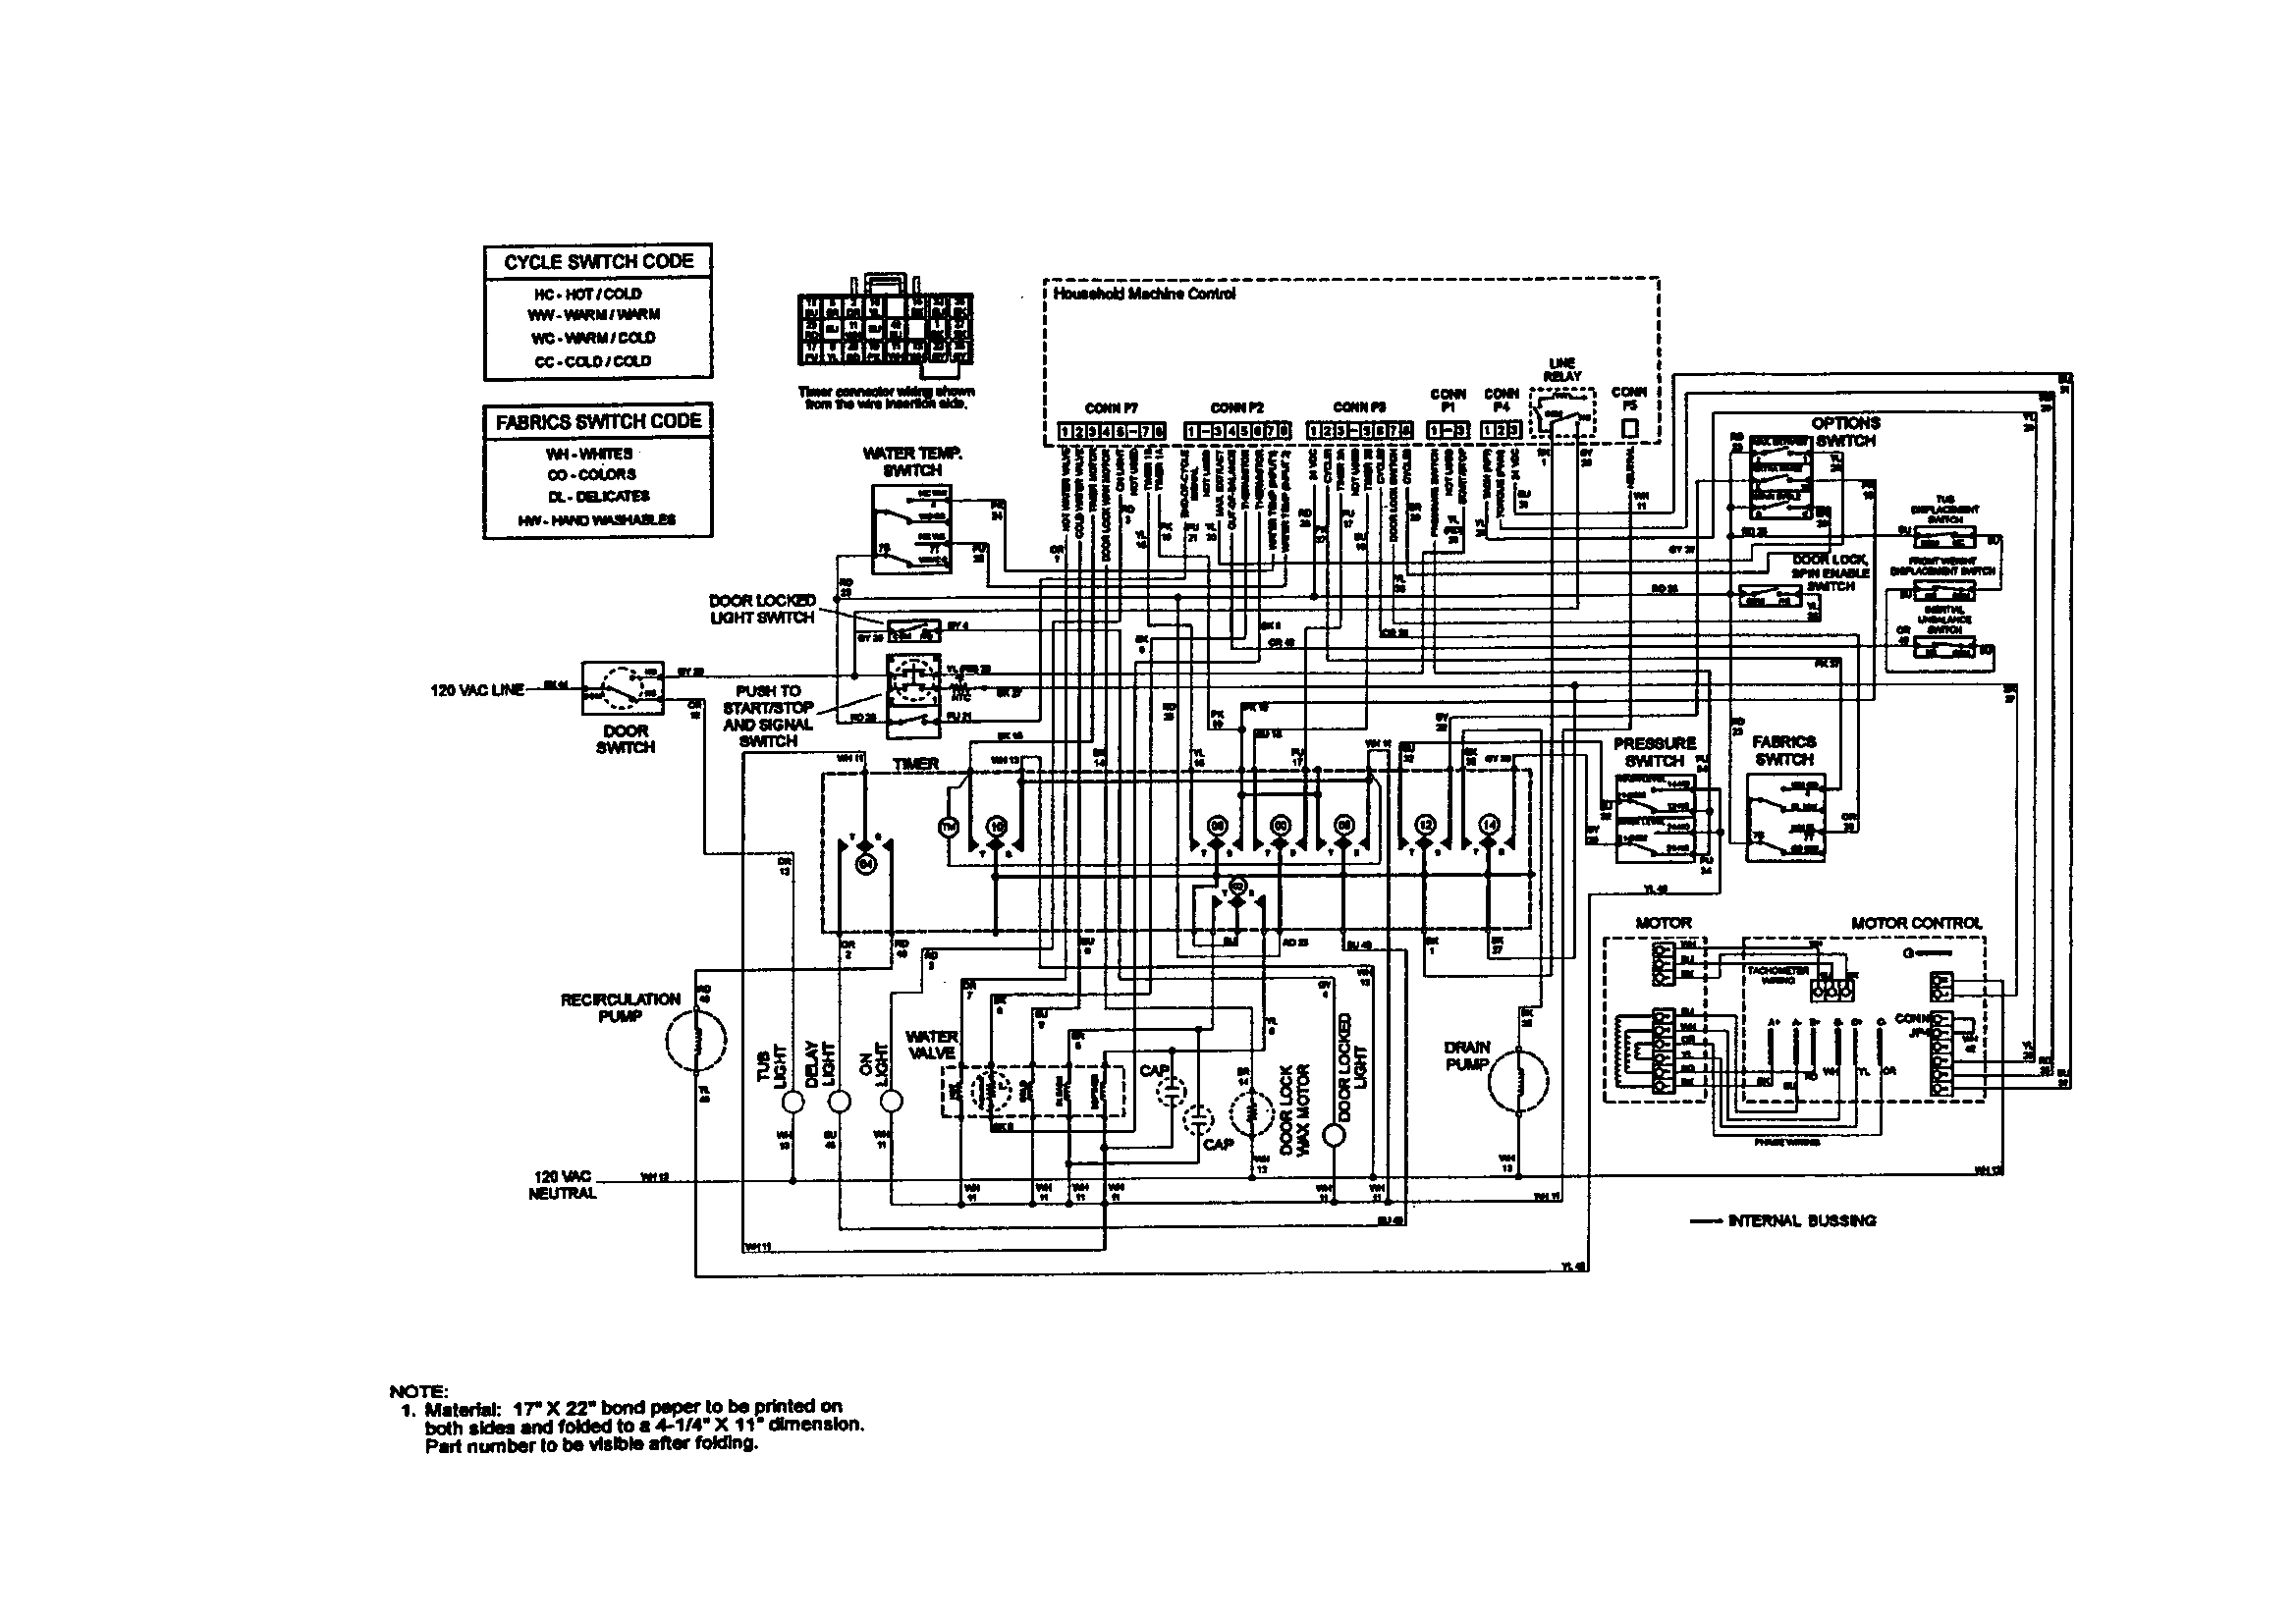 Snap On Mig Welder 117 040 Wiring Diagram Wiring Diagrams on fuse box circuit